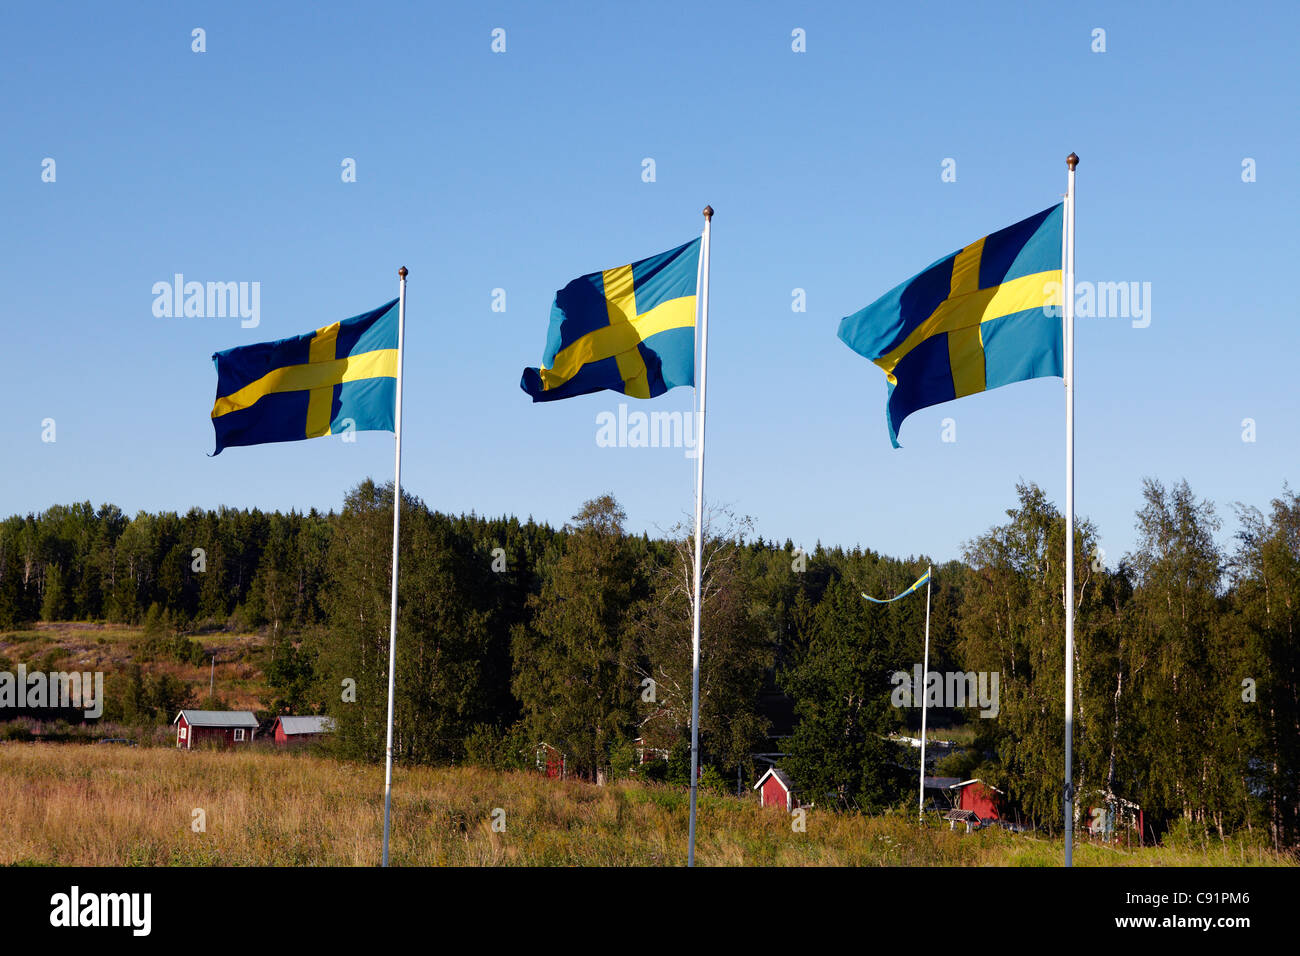 Swedish flags over rural landscape - Stock Image